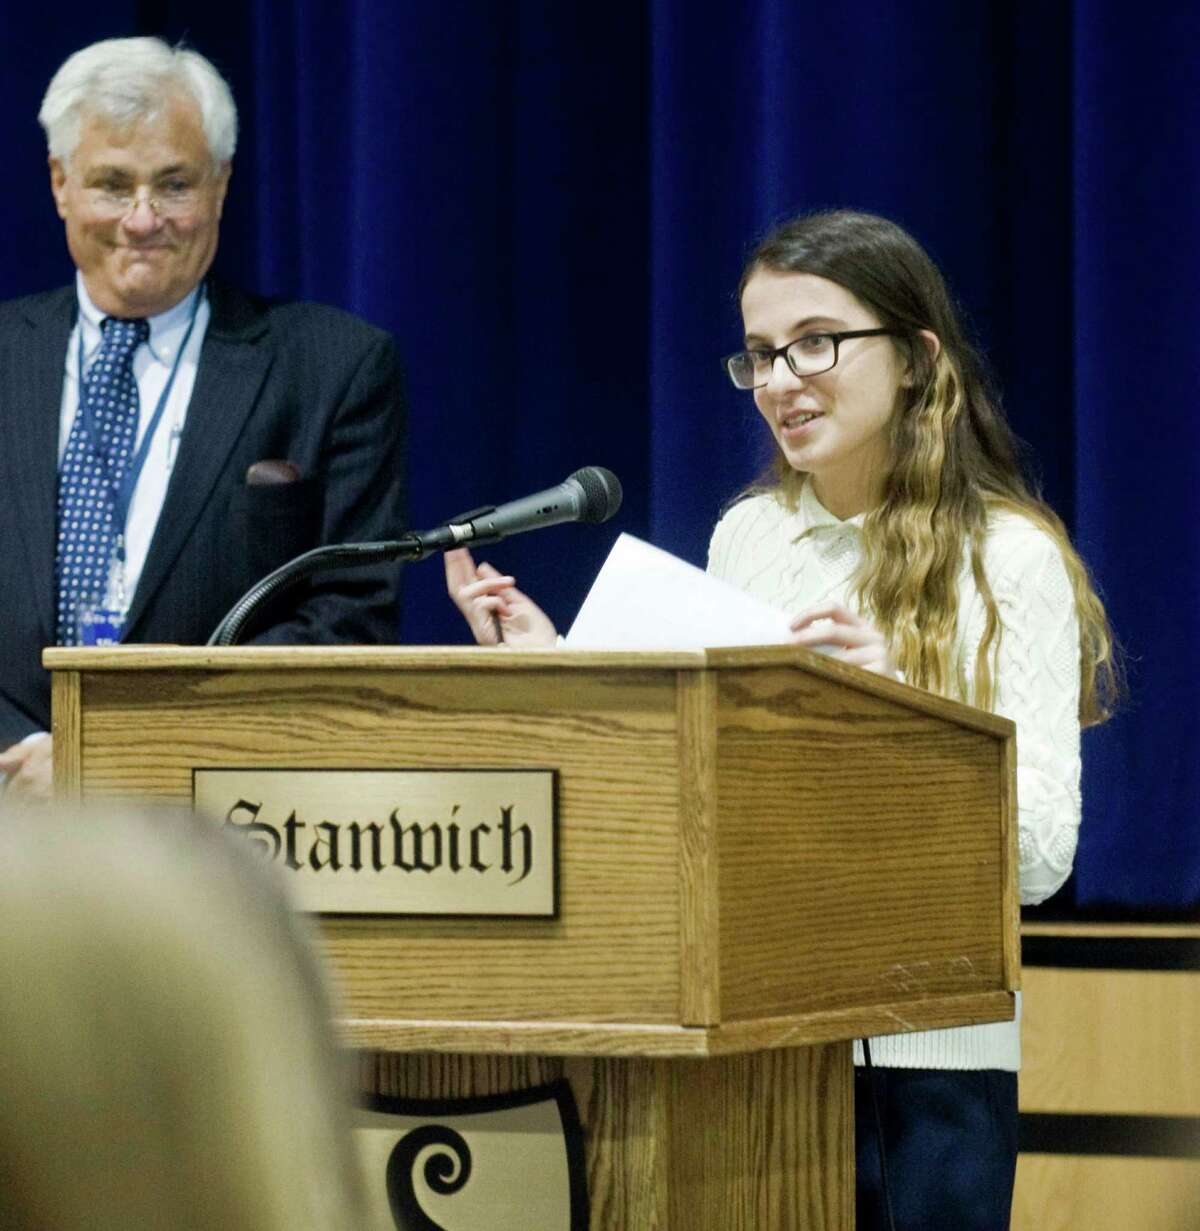 Democratic Town Committee Chair Jeff Ramer is introduced by senior Yona Davershi at an assembly in the Stanwich School gymnasium. Tuesday, Oct. 11, 2016